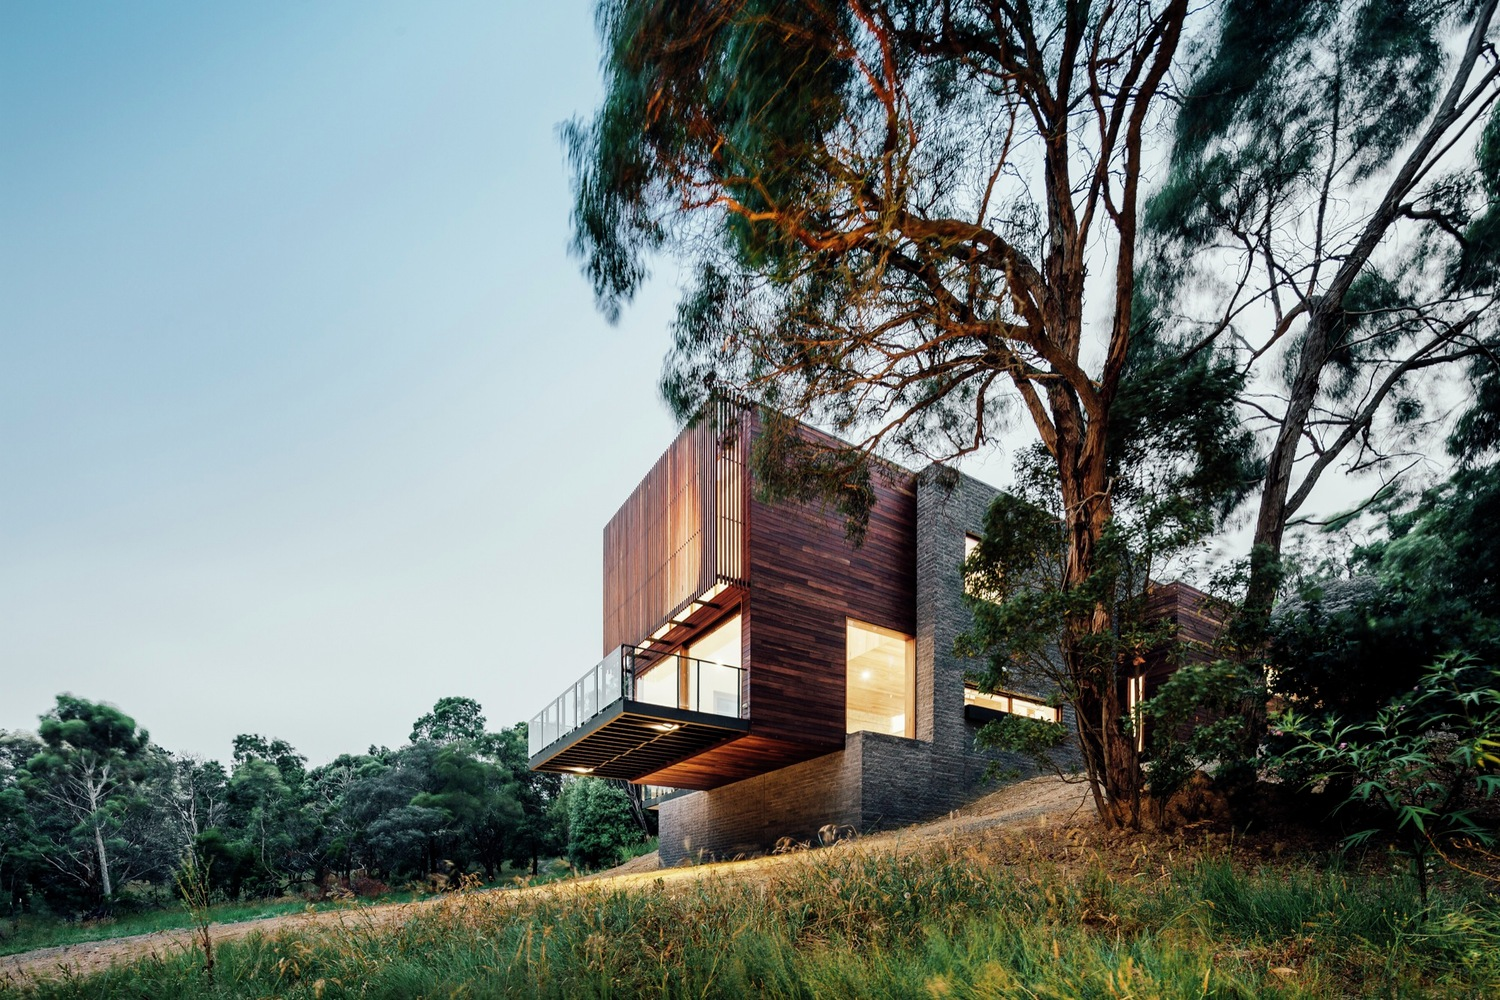 Invermay House by Moloney Architects (via Lunchbox Architect)